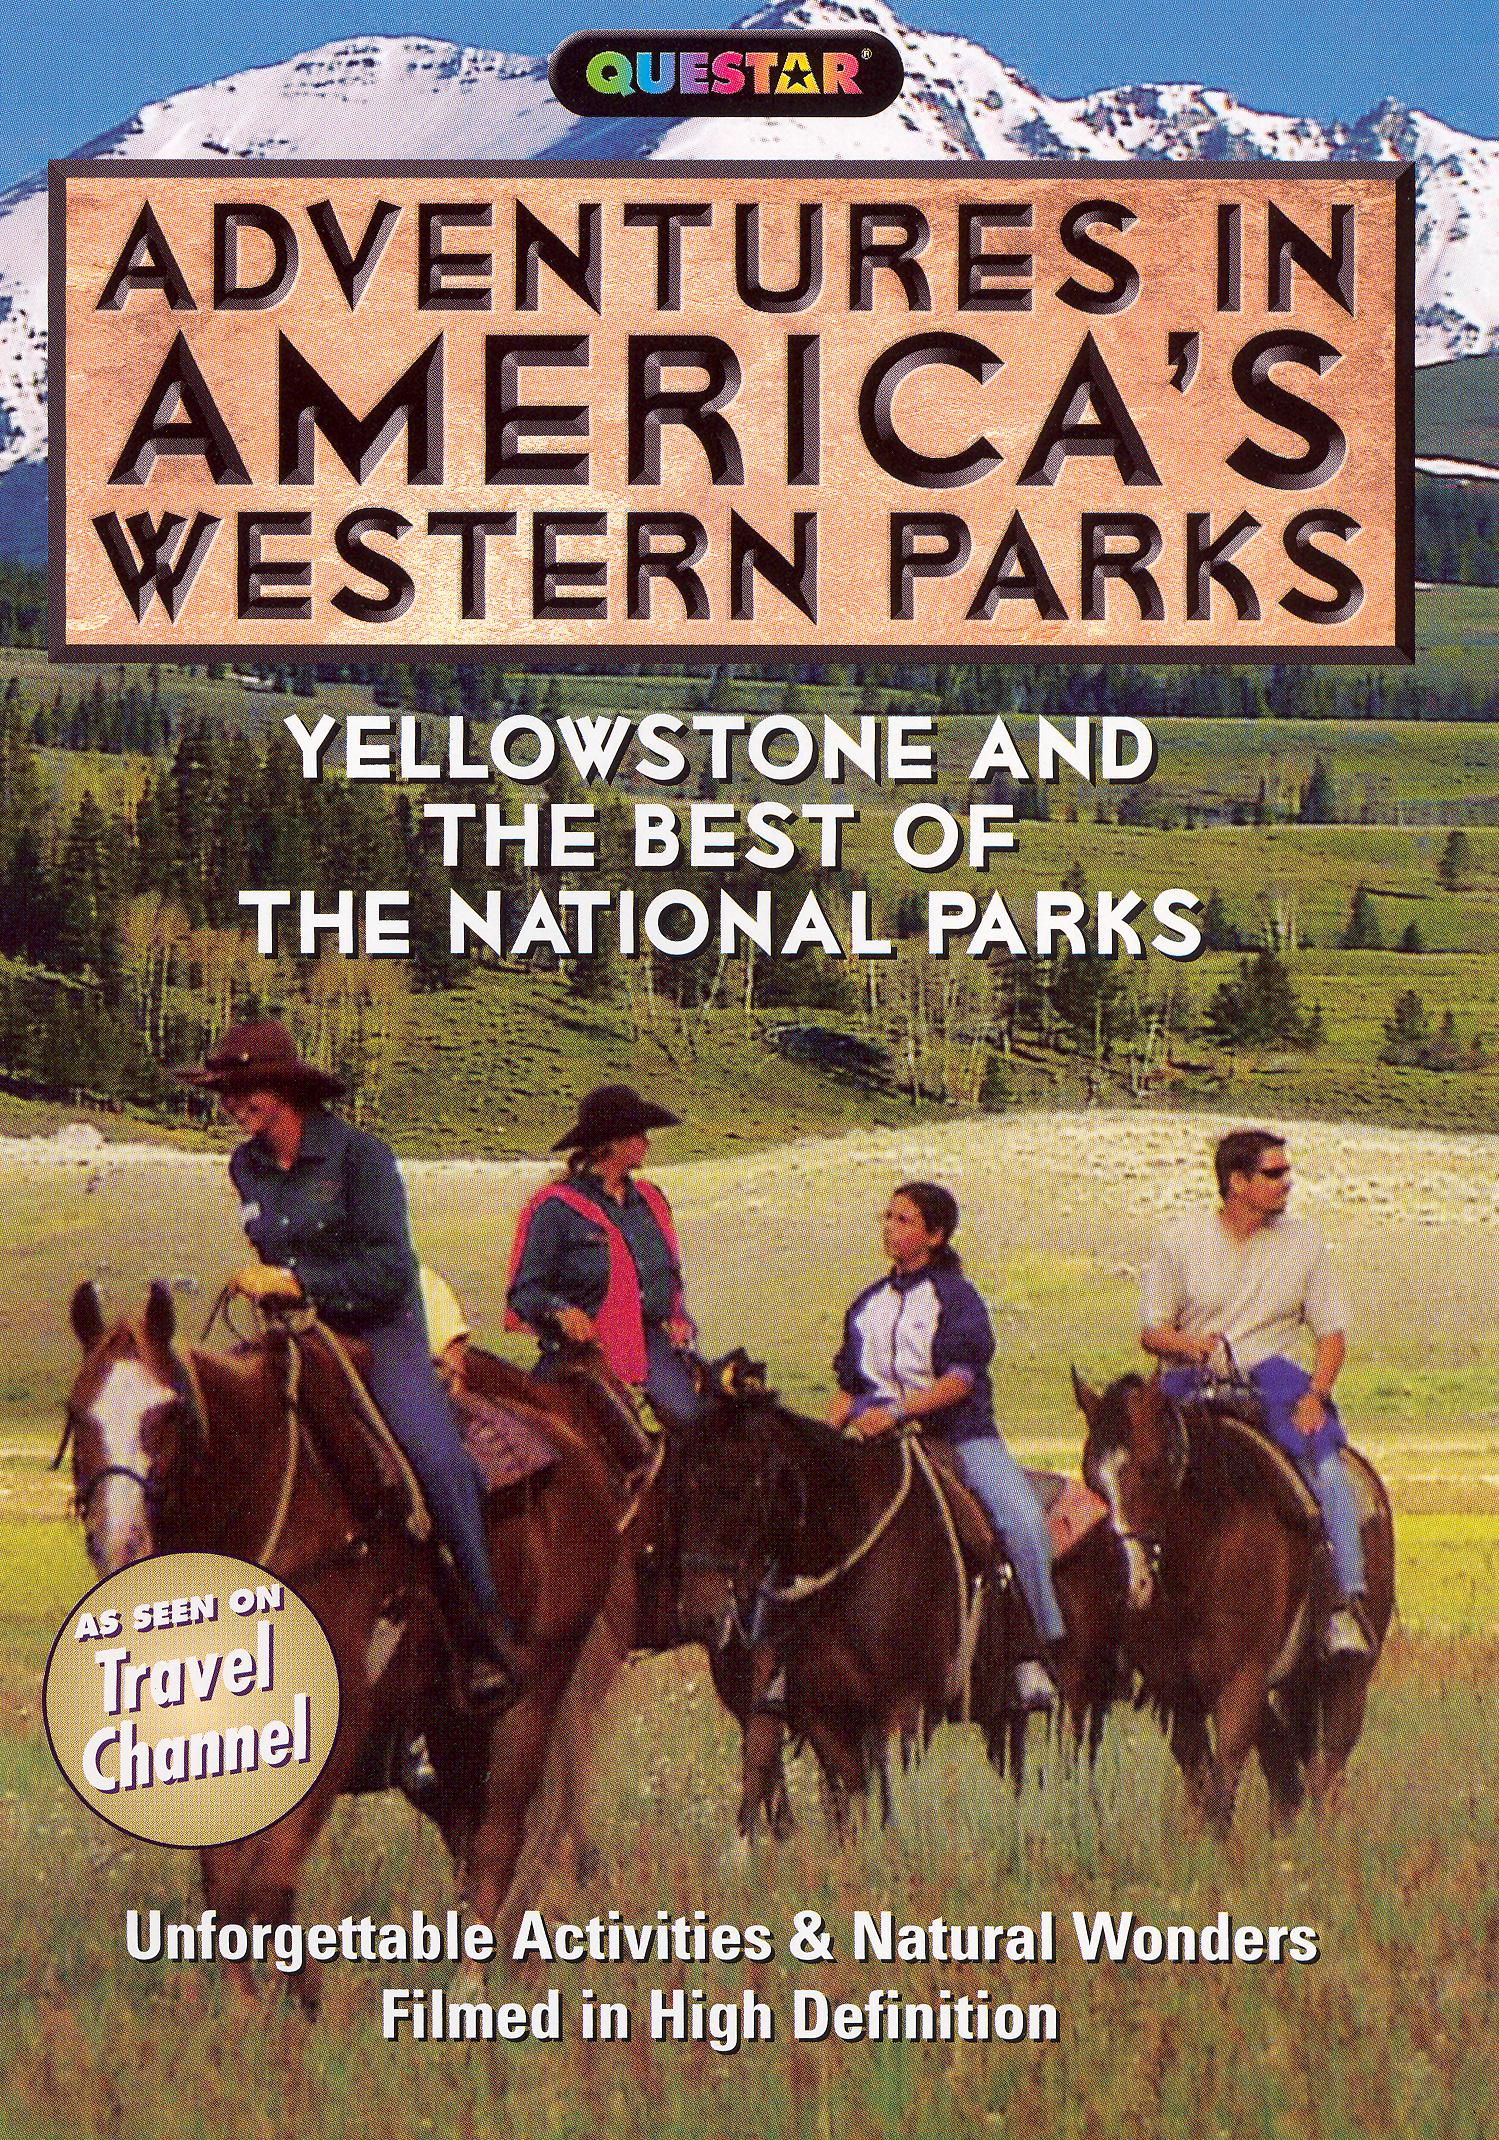 Adventures in America's Western Parks: Yellowstone and the Best of The National Parks